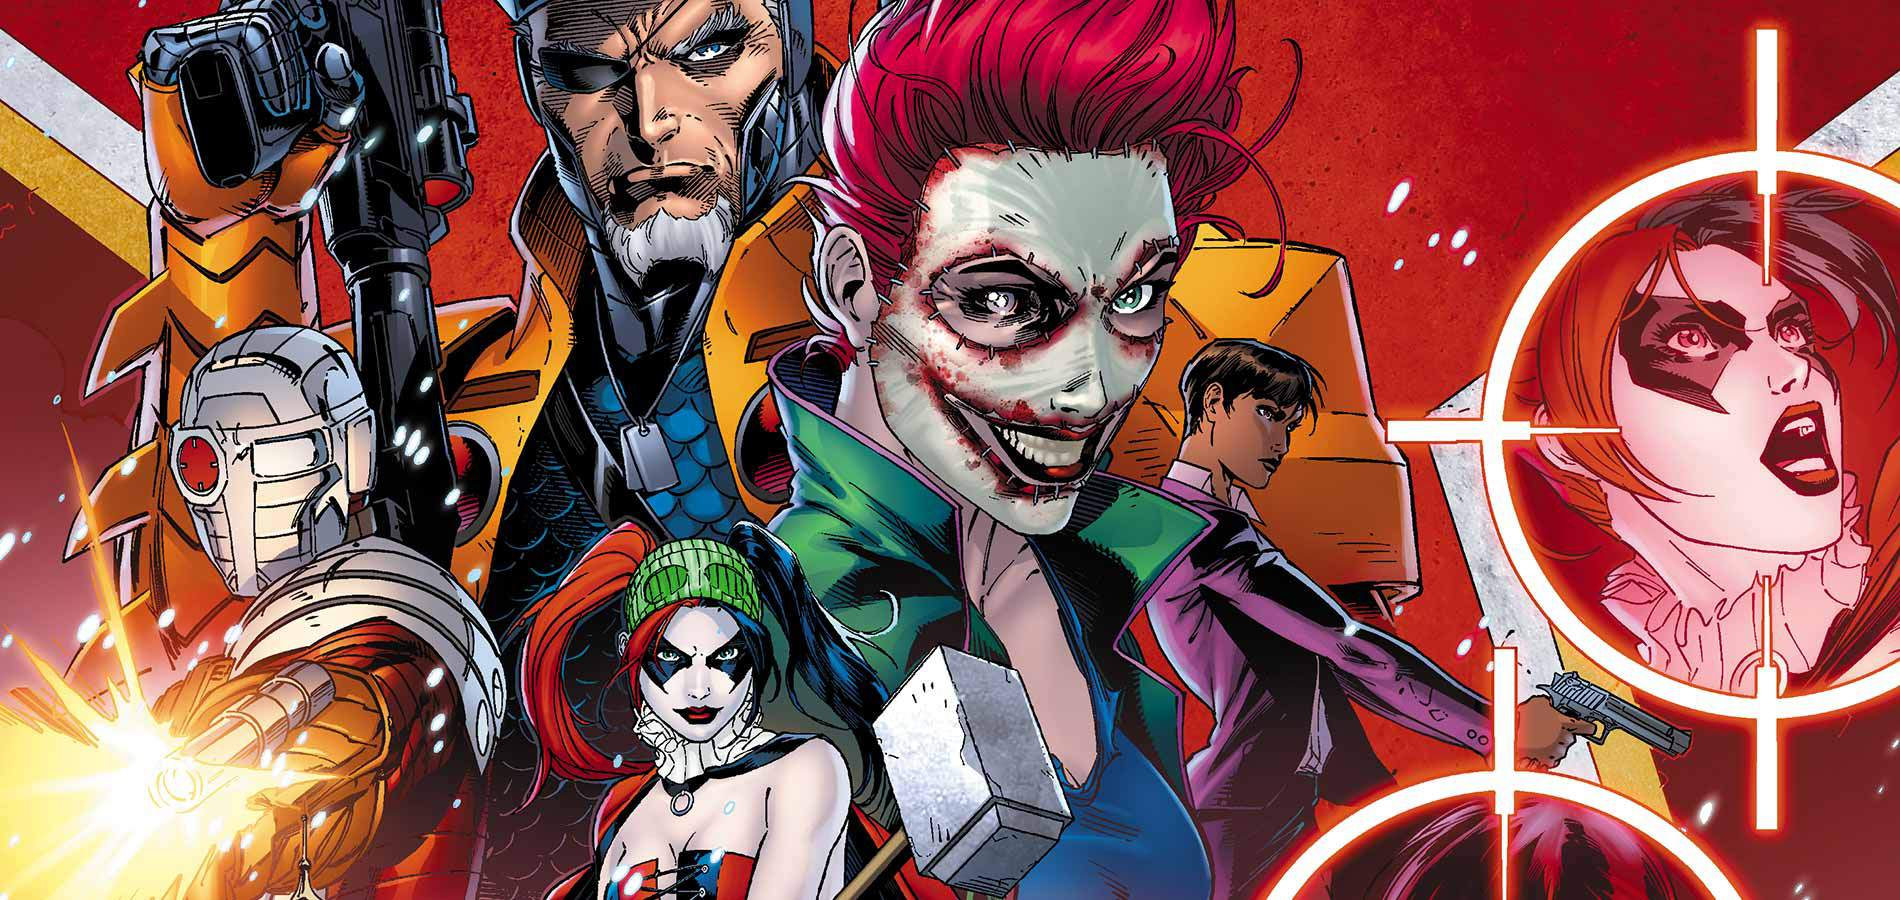 Suicide Squad Wallpaper   HD Wallpapers Backgrounds of Your Choice 1900x900